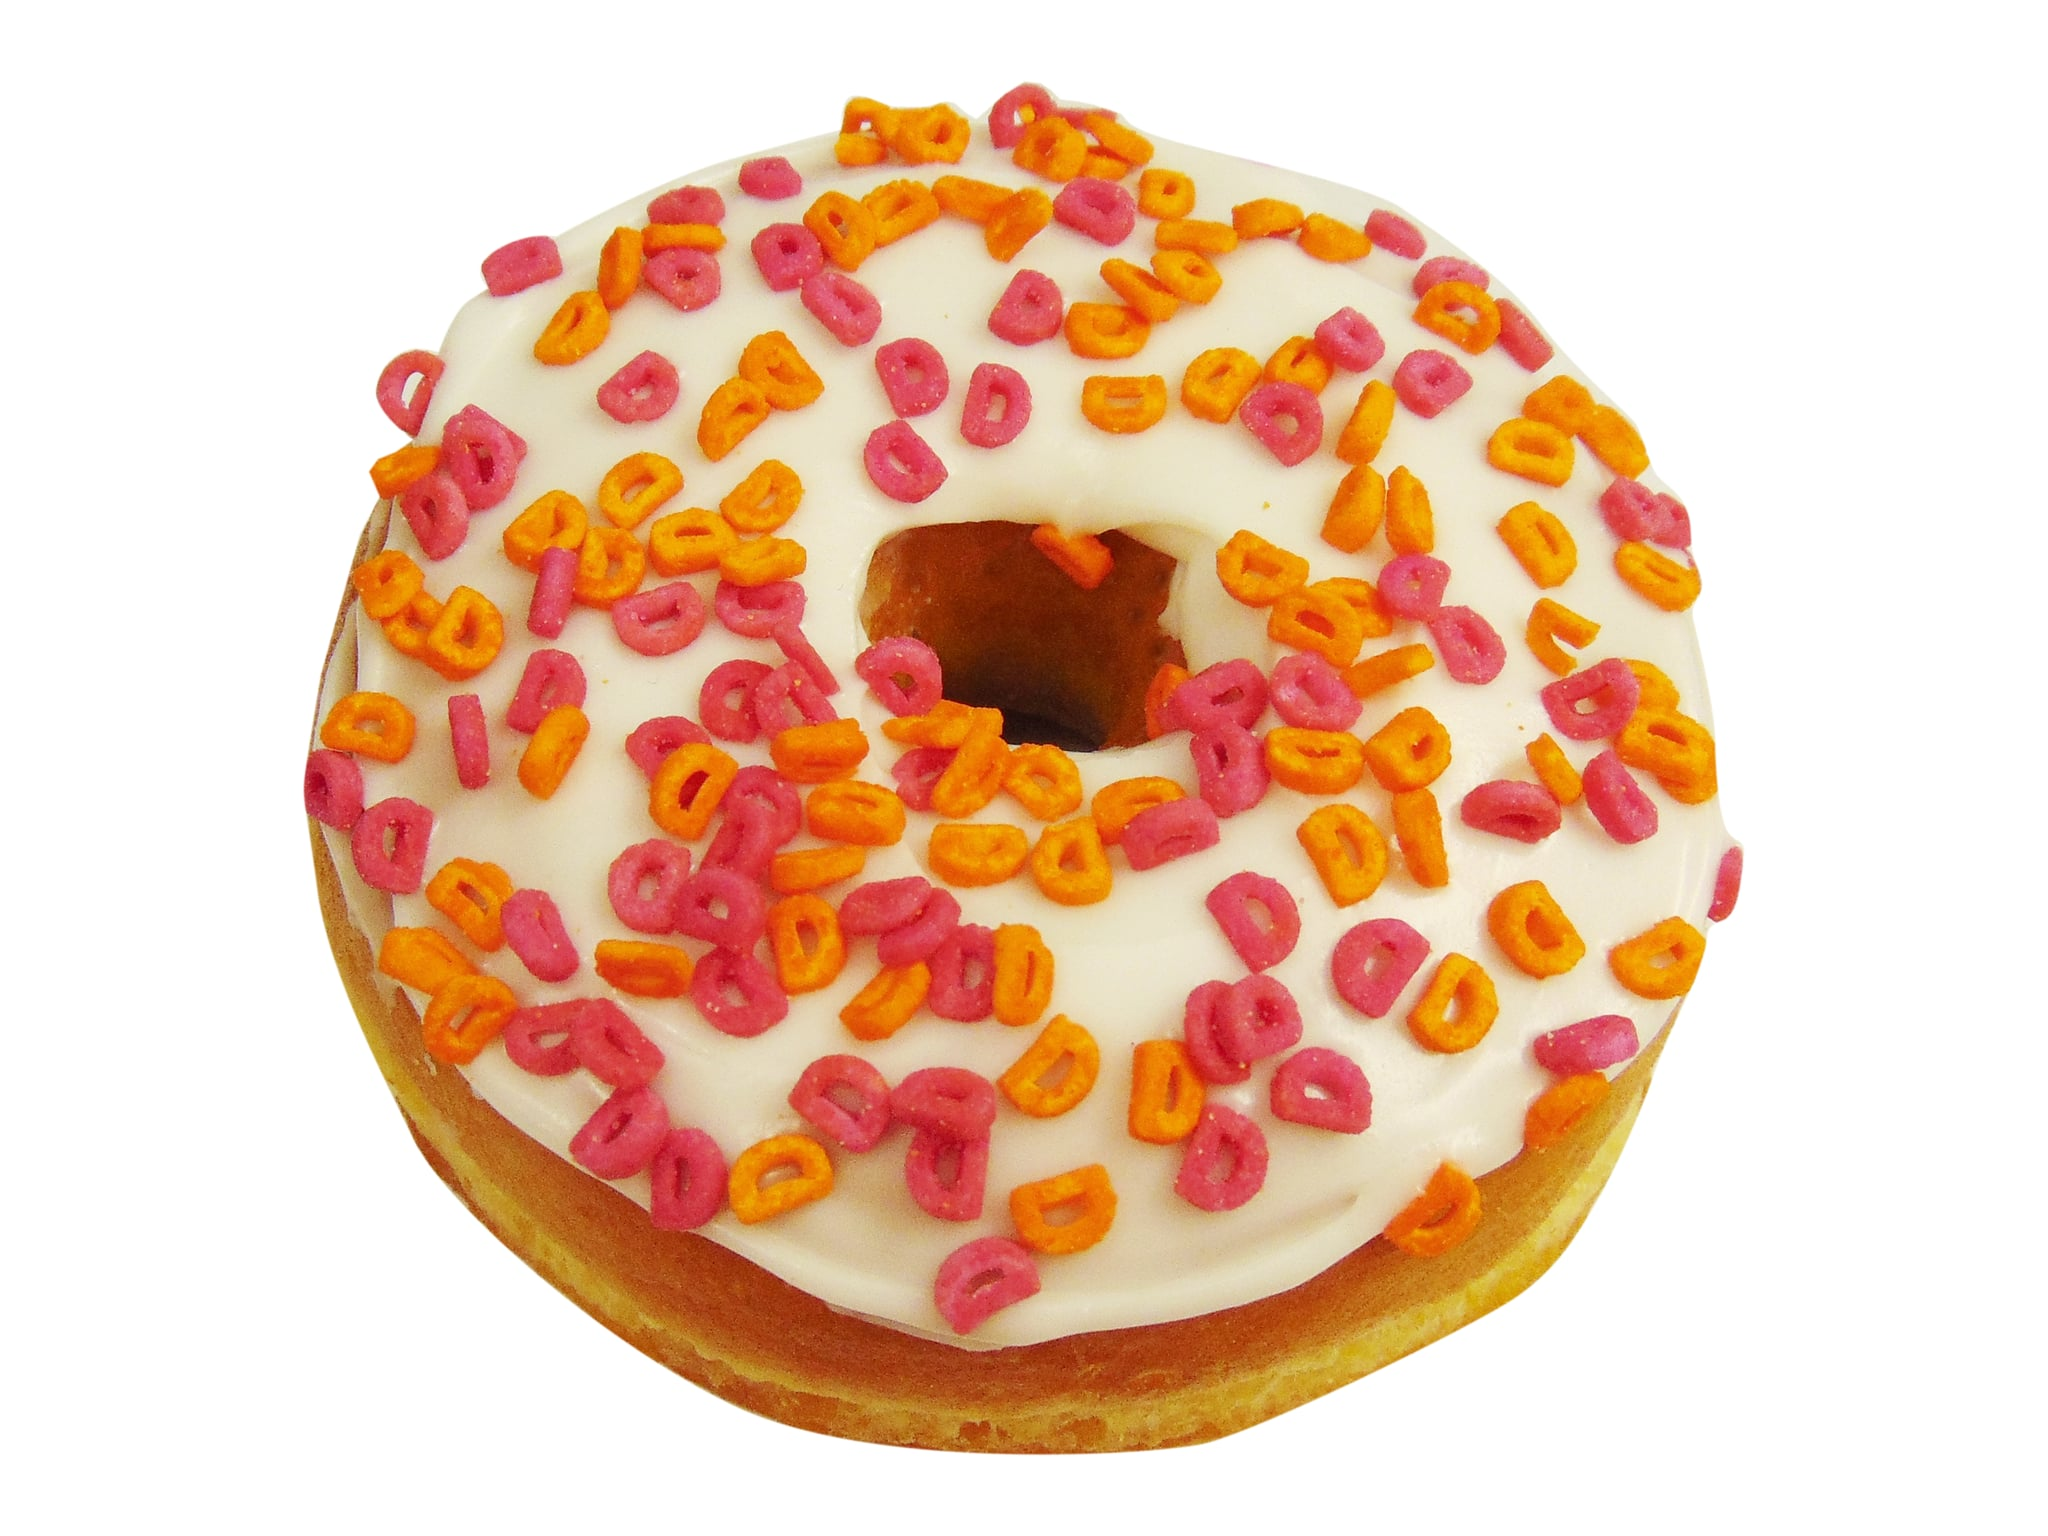 09307ed0cc44a7ba Dunkin Donuts Sprinkles Donut Free Coffee At Dunkin Donuts Today Try Dunkin Donuts New Frozen Coffee For Free Friday